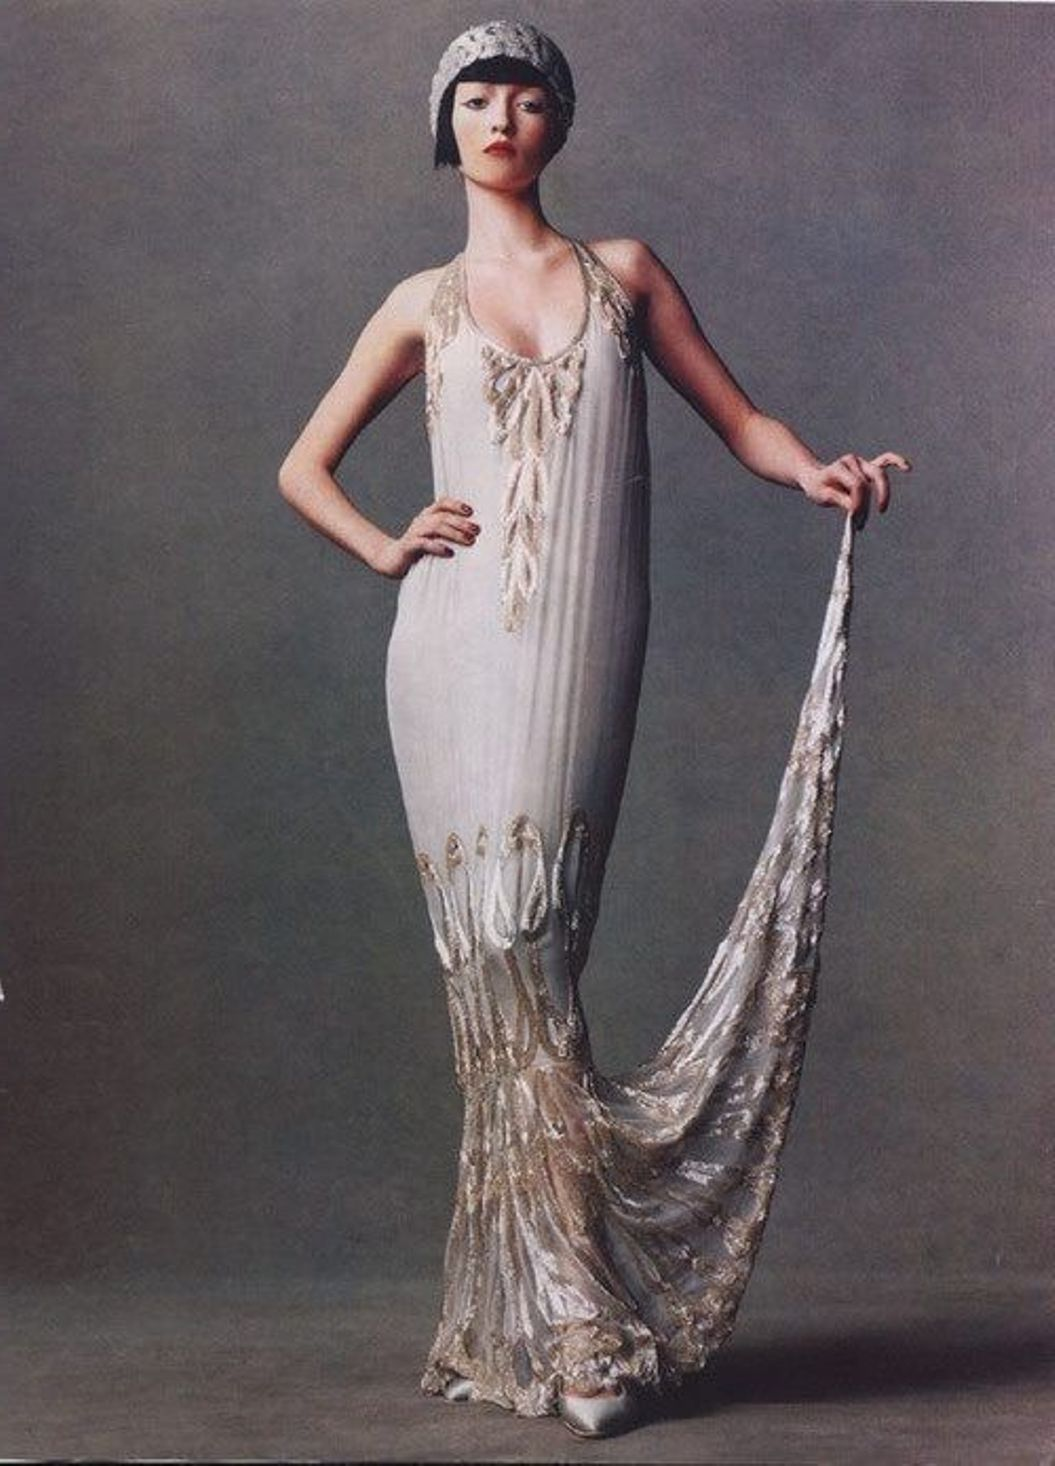 Pin by Rene Kirschner on Fashion | Pinterest | Dresses, Flapper ...